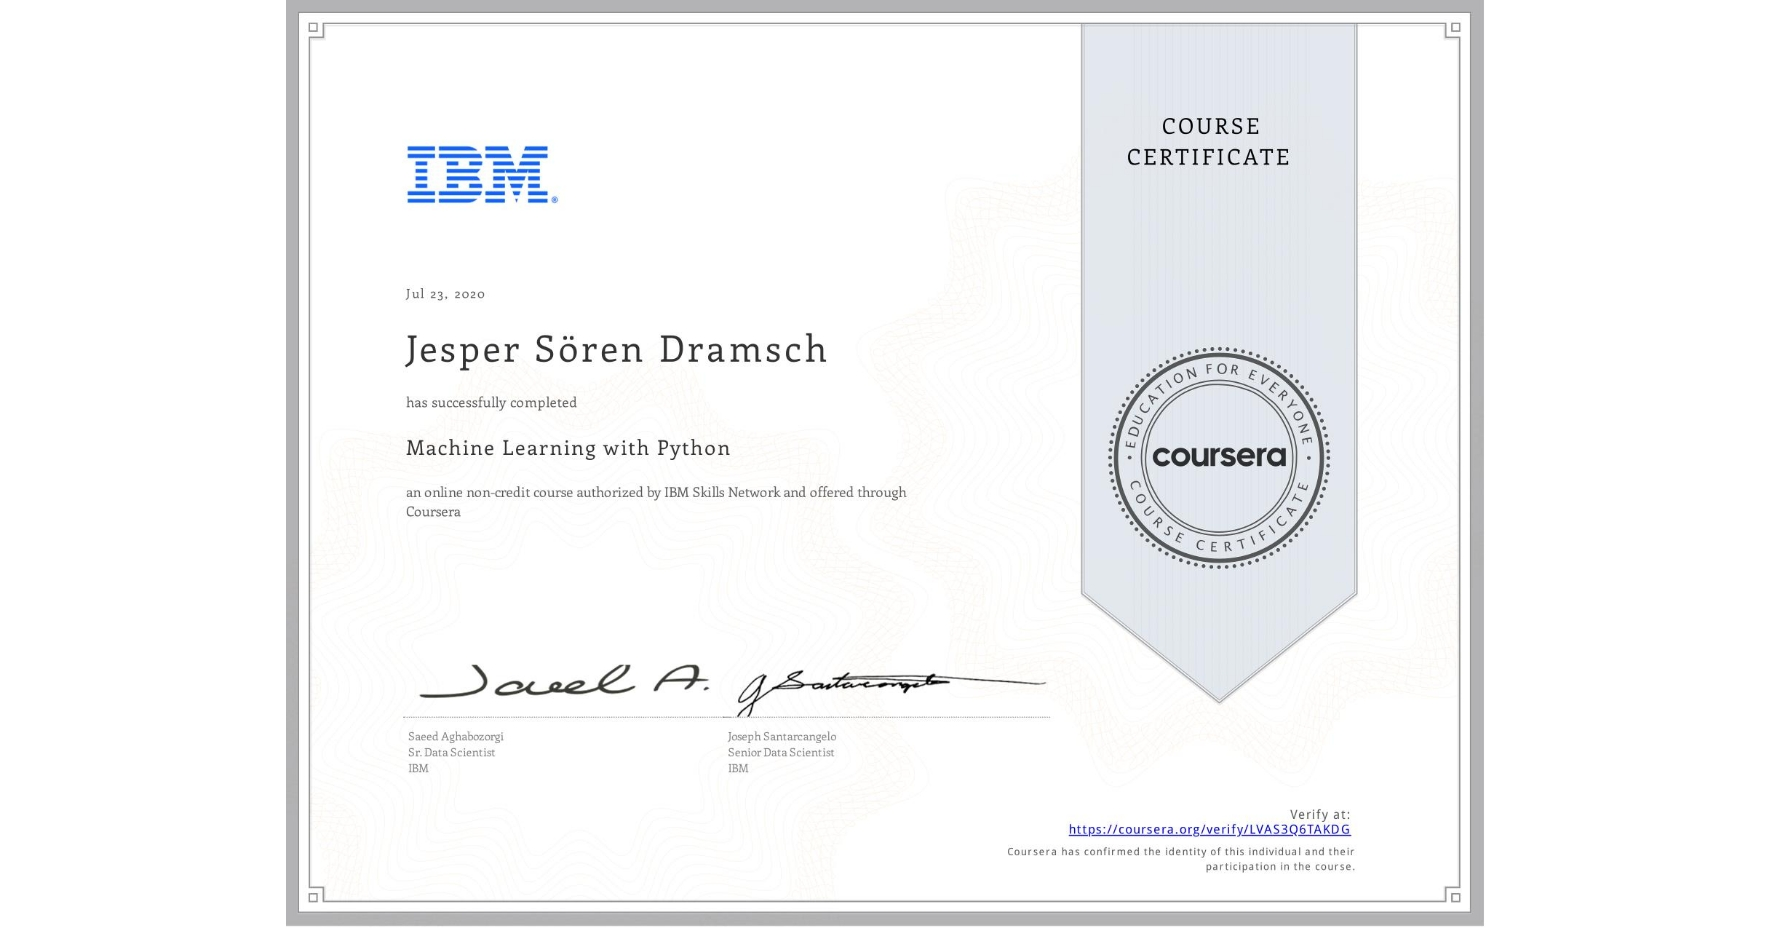 View certificate for Jesper Sören Dramsch, Machine Learning with Python, an online non-credit course authorized by IBM and offered through Coursera